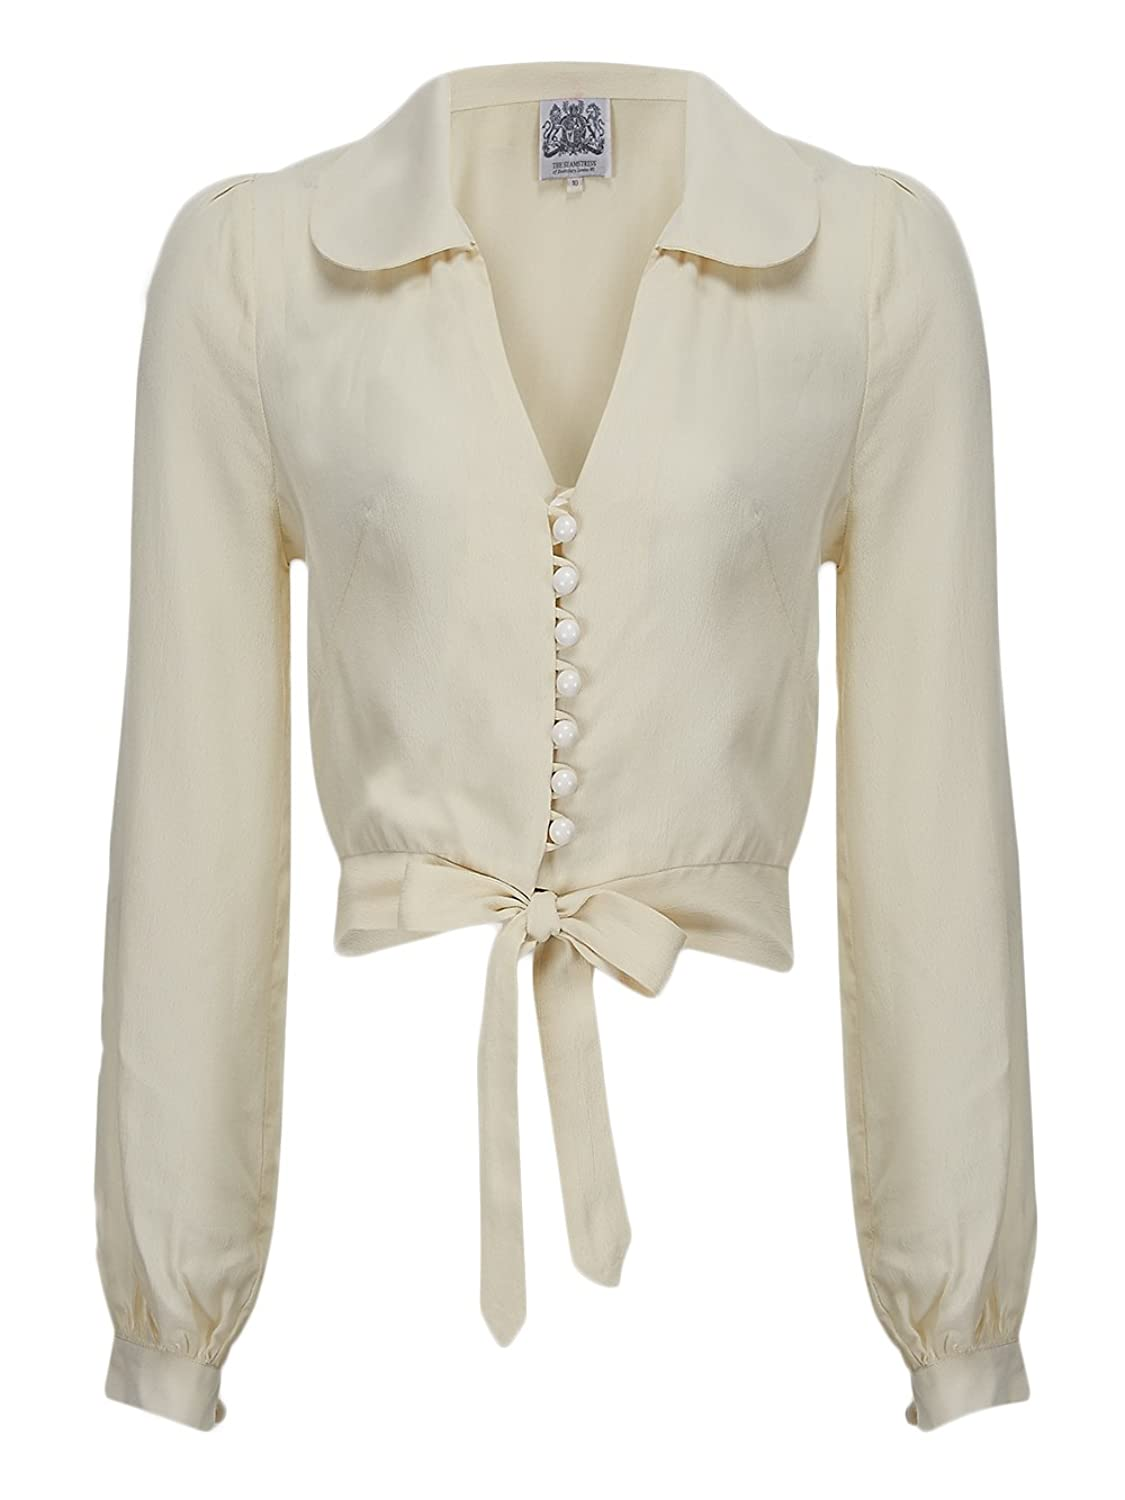 1940s Dresses and Clothing UK | 40s Shoes UK 1940s/50s Authentic Vintage Inspired Button Up Tie Down Blouse in Cream �39.00 AT vintagedancer.com